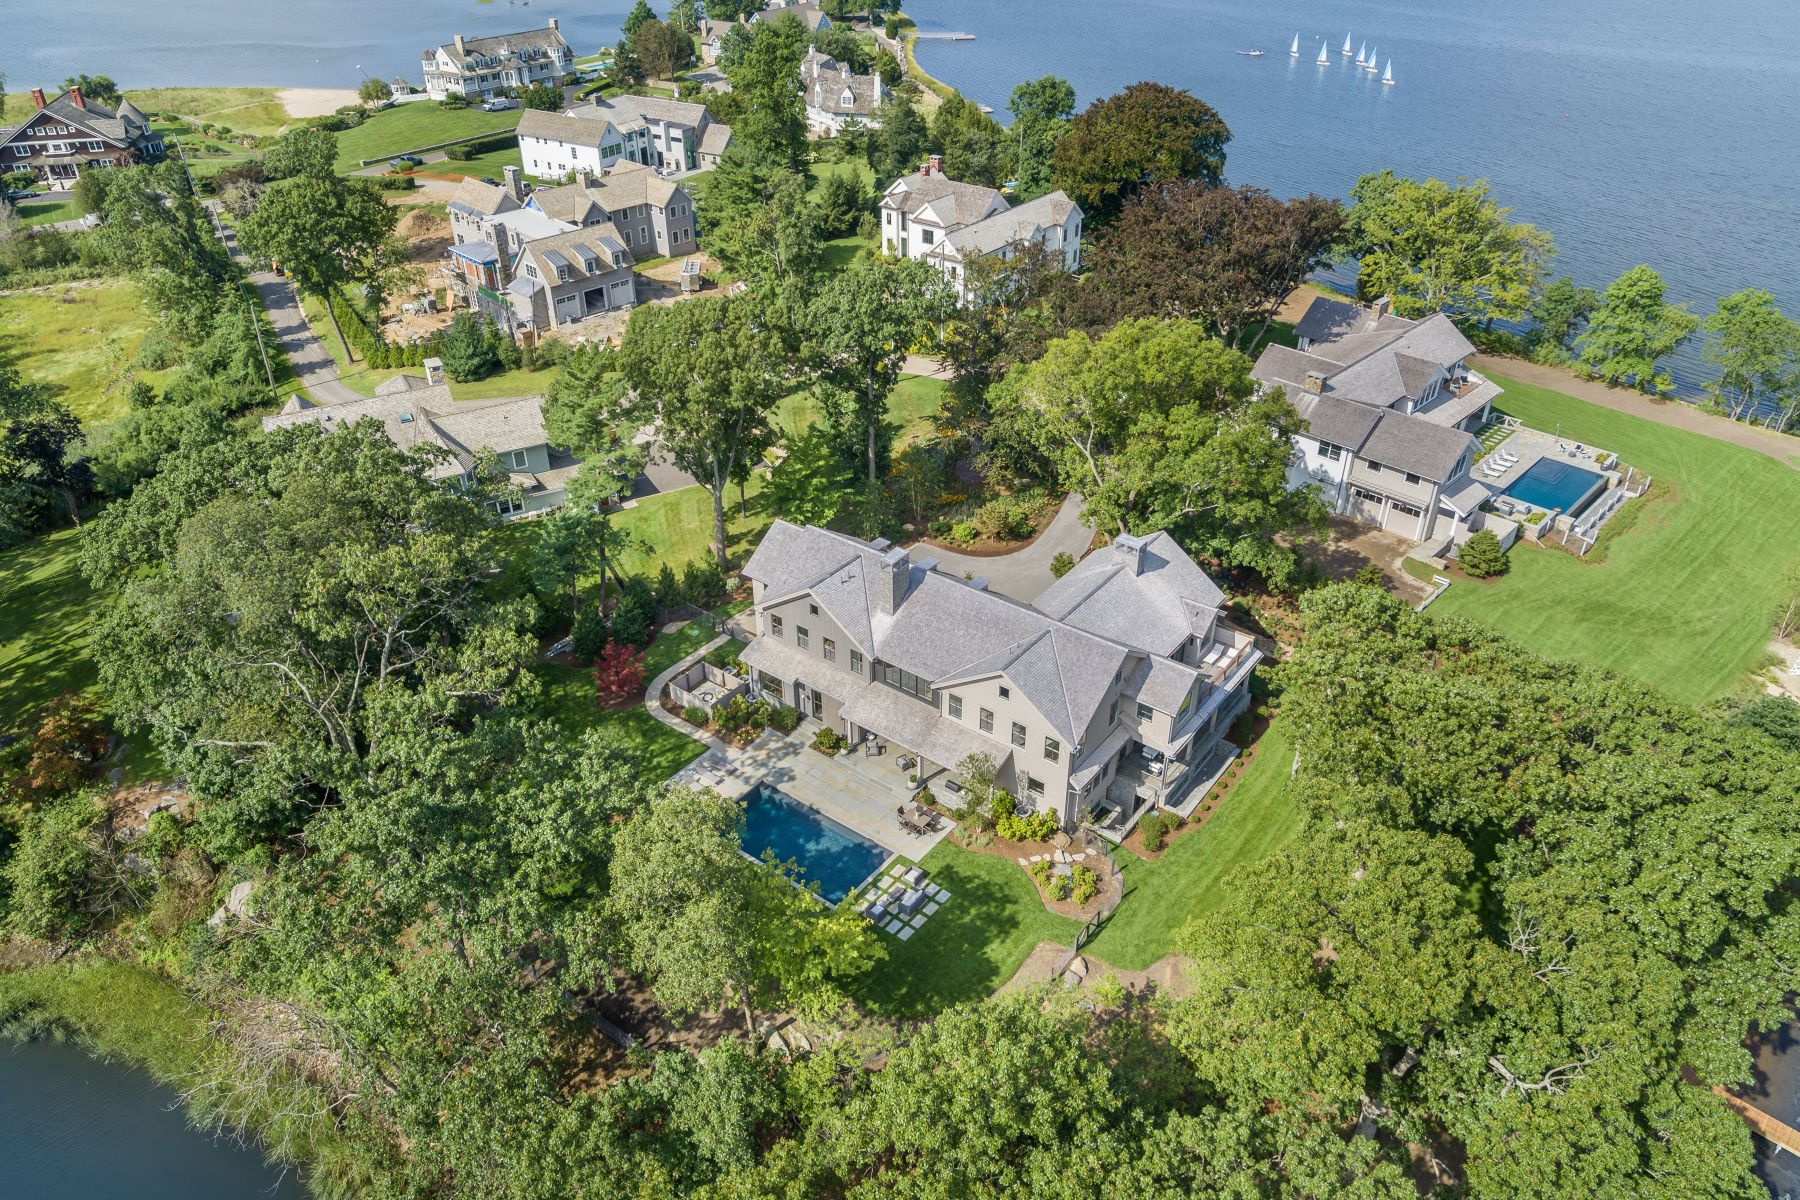 Single Family Home for Sale at 17 Brush Island Road 17 Brush Island Road Darien, Connecticut 06820 United States